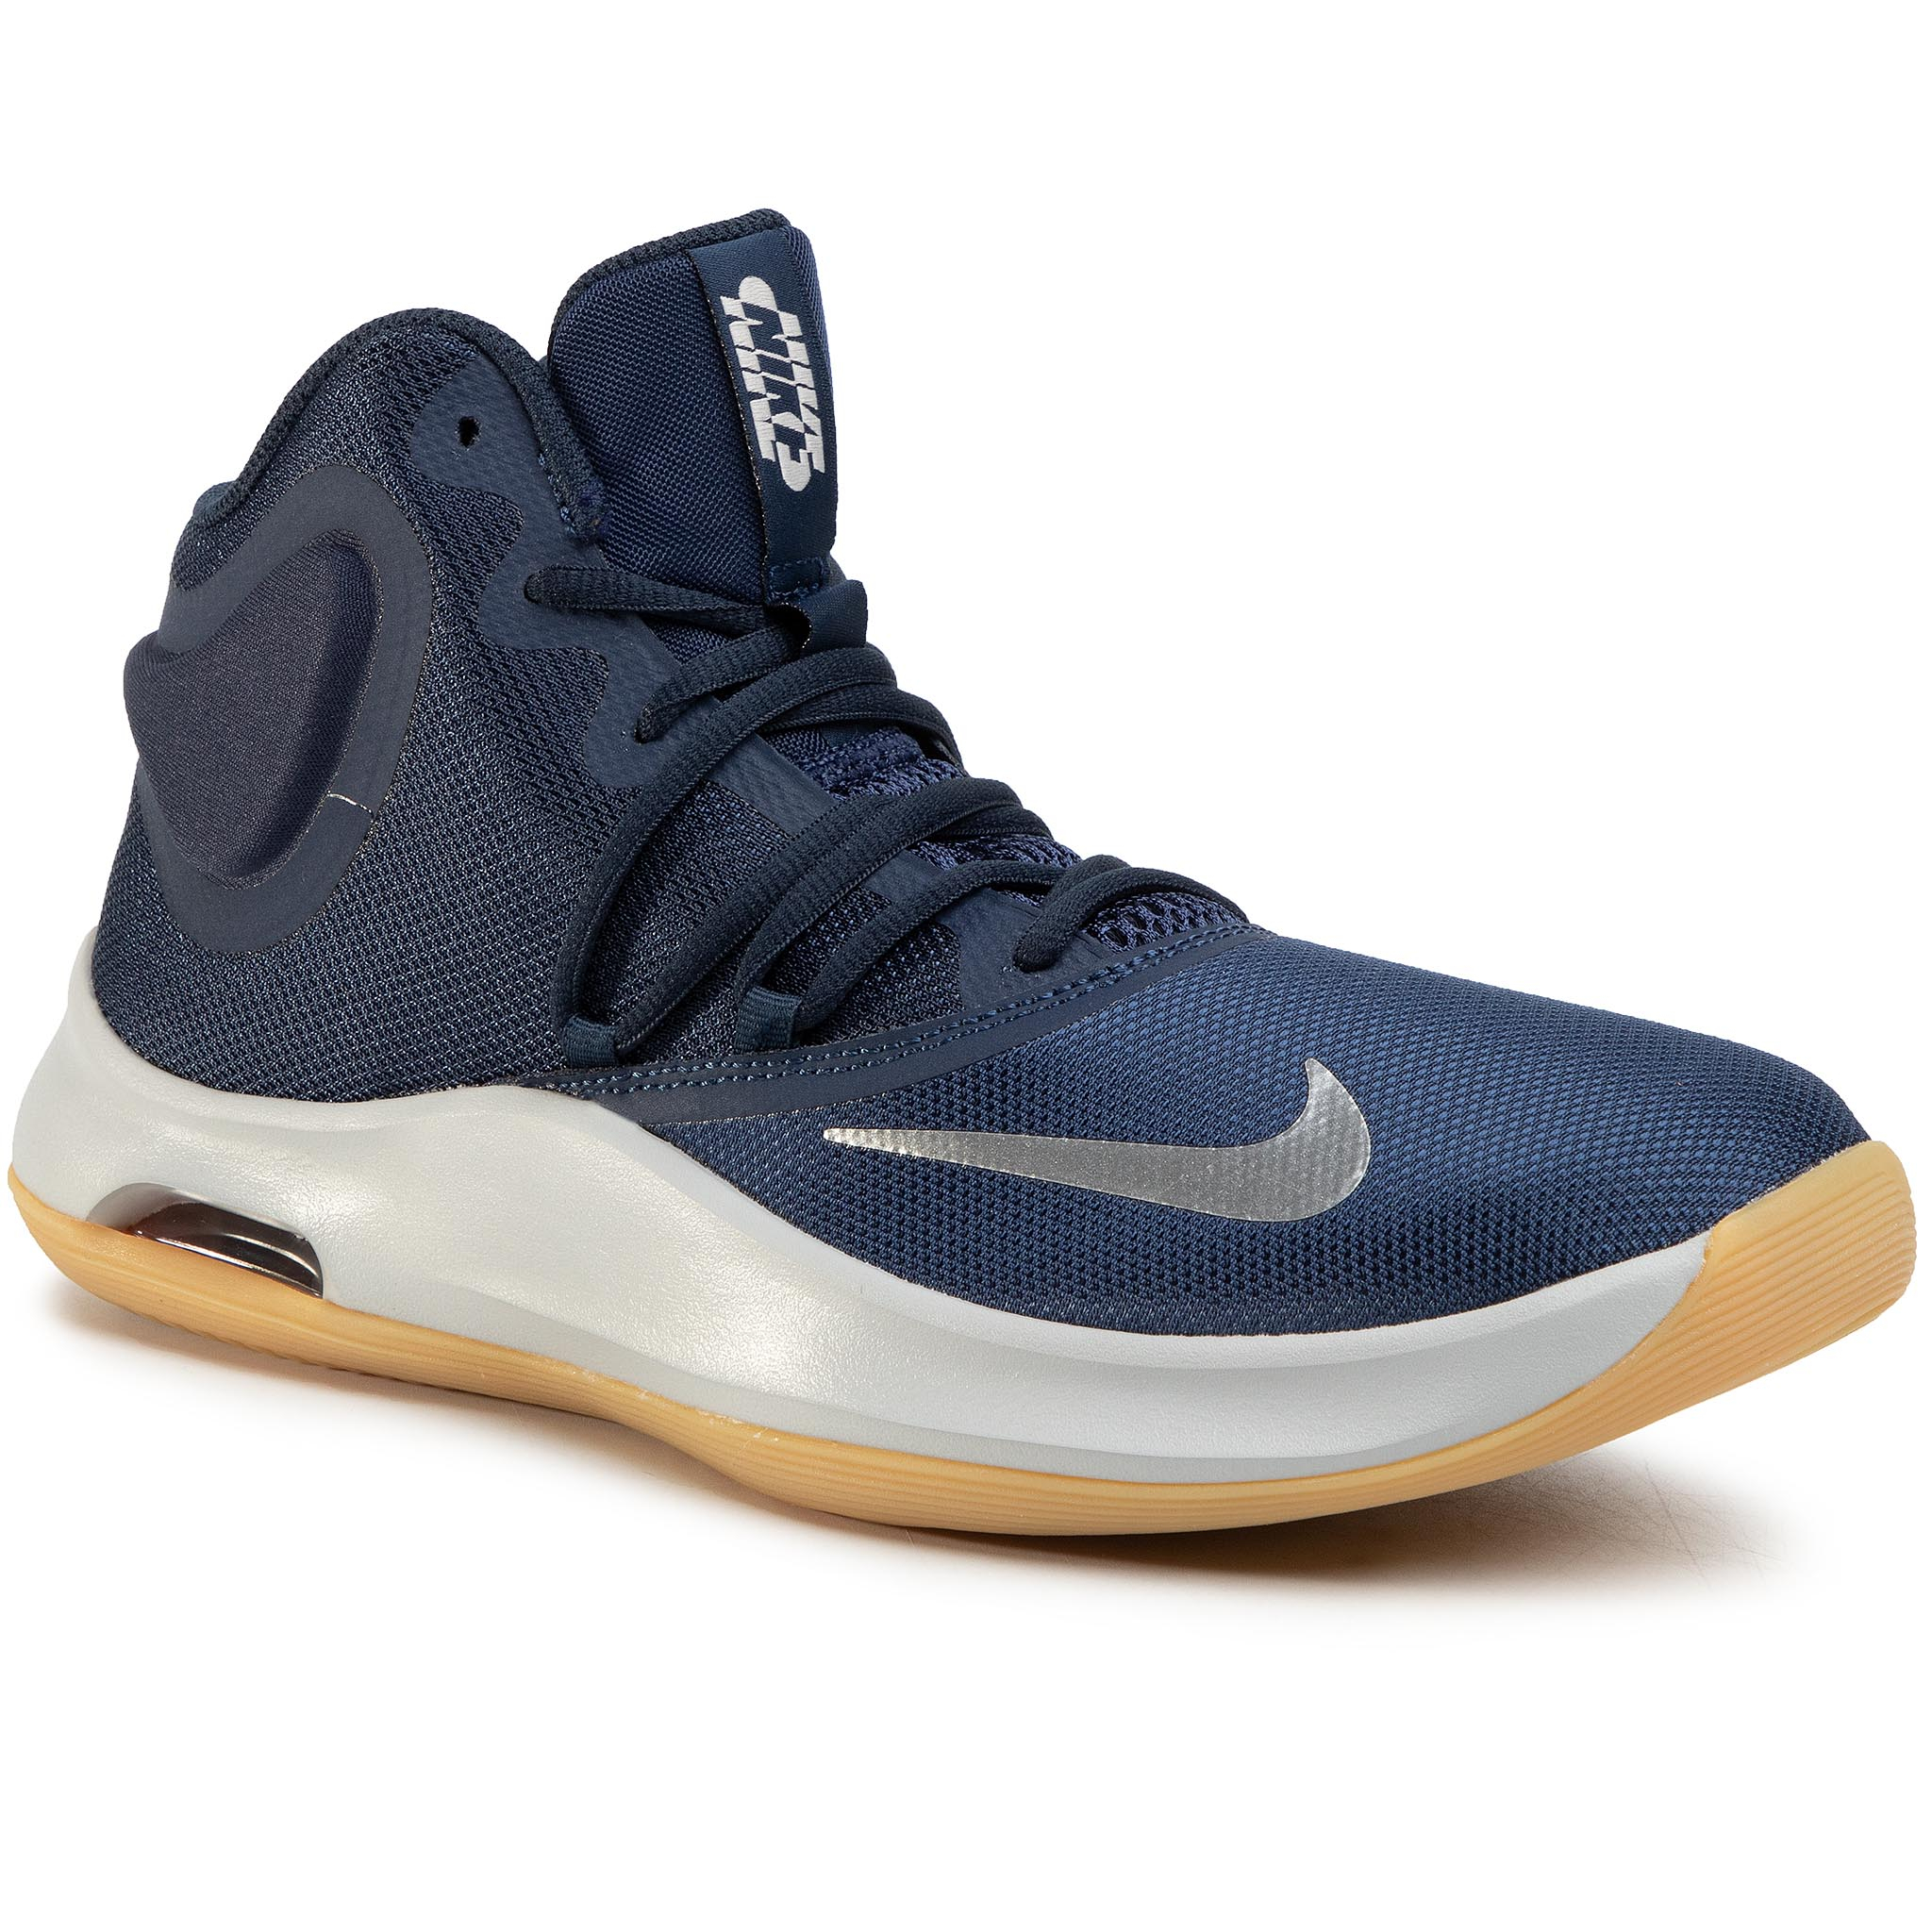 Pantofi Nike - Air Versitile Iv At1199 400 Midnight Navy/Metallic Silver imagine epantofi.ro 2021